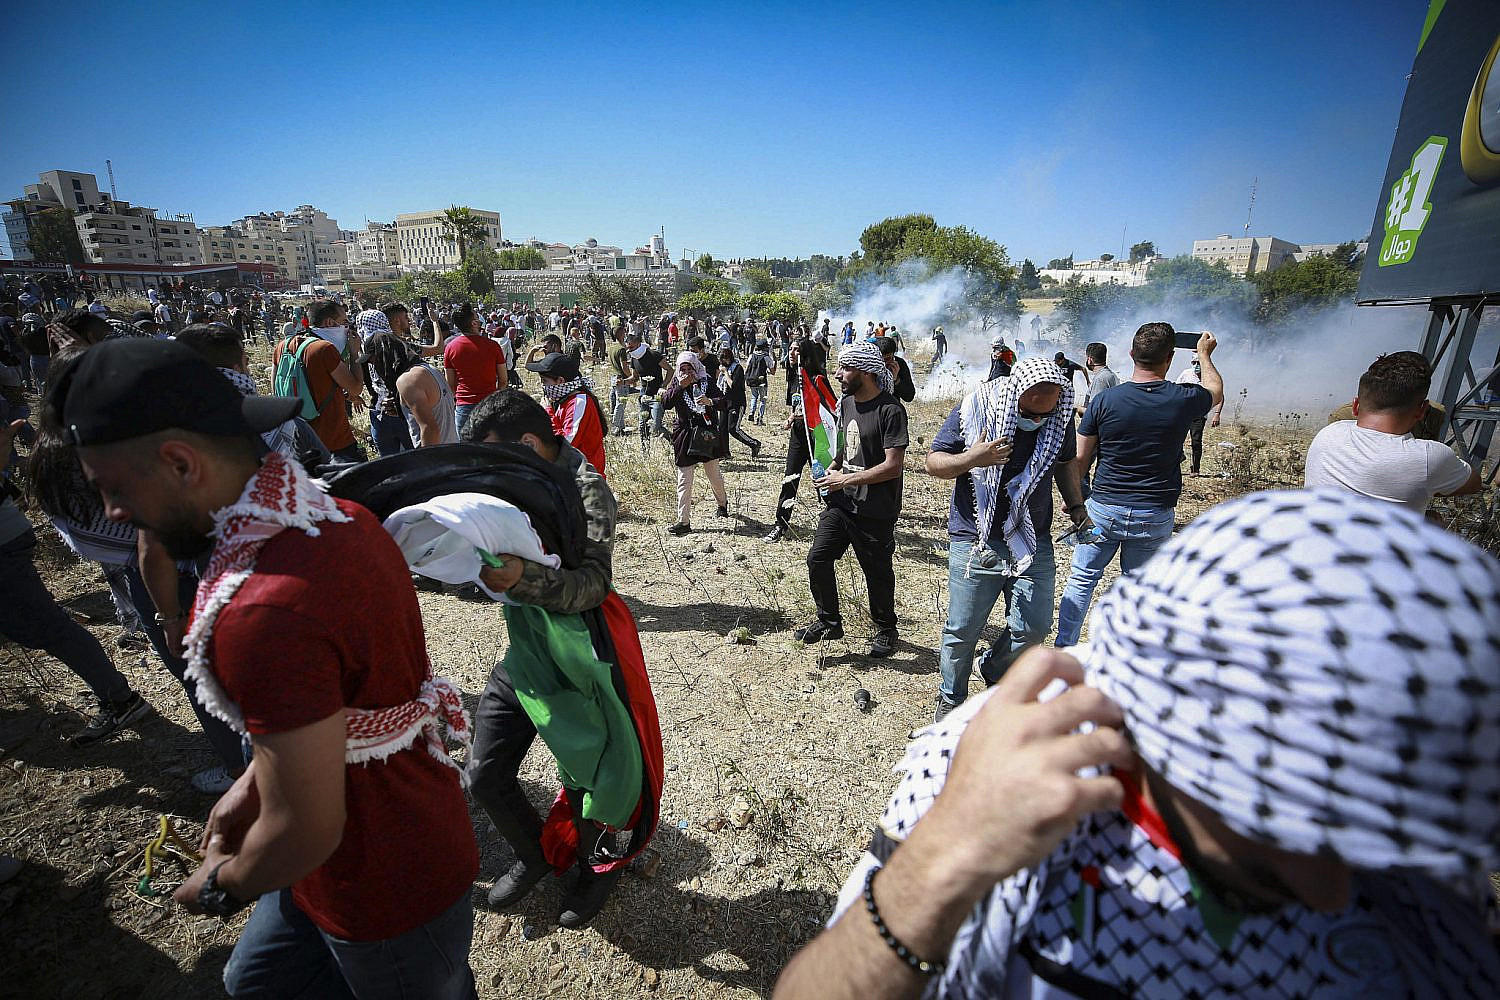 Palestinian protesters confronted by Israeli security forces during a demonstration near the Beit El checkpoint at the entrance of Ramallah, May 18, 2021. (Flash90)